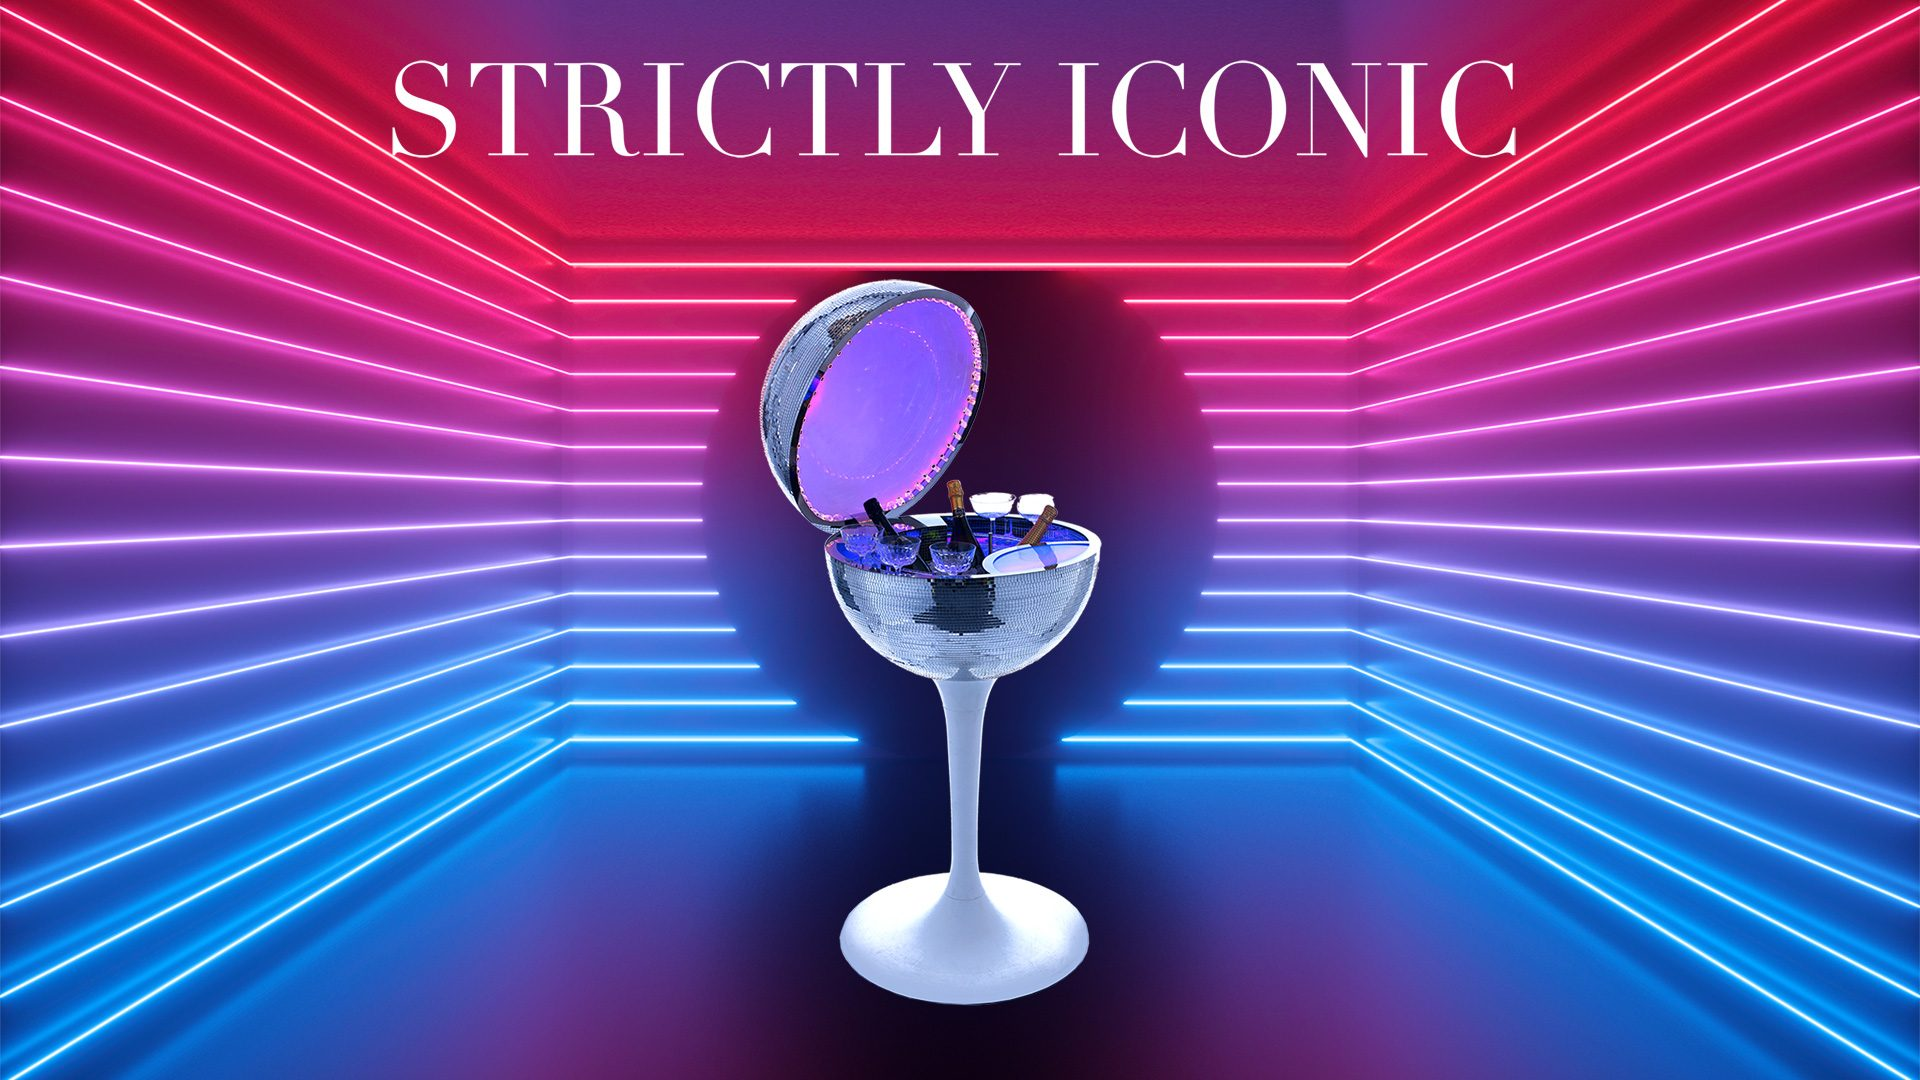 Barhaus-Mirrorball-Icon-Cocktail-Concept-Feature